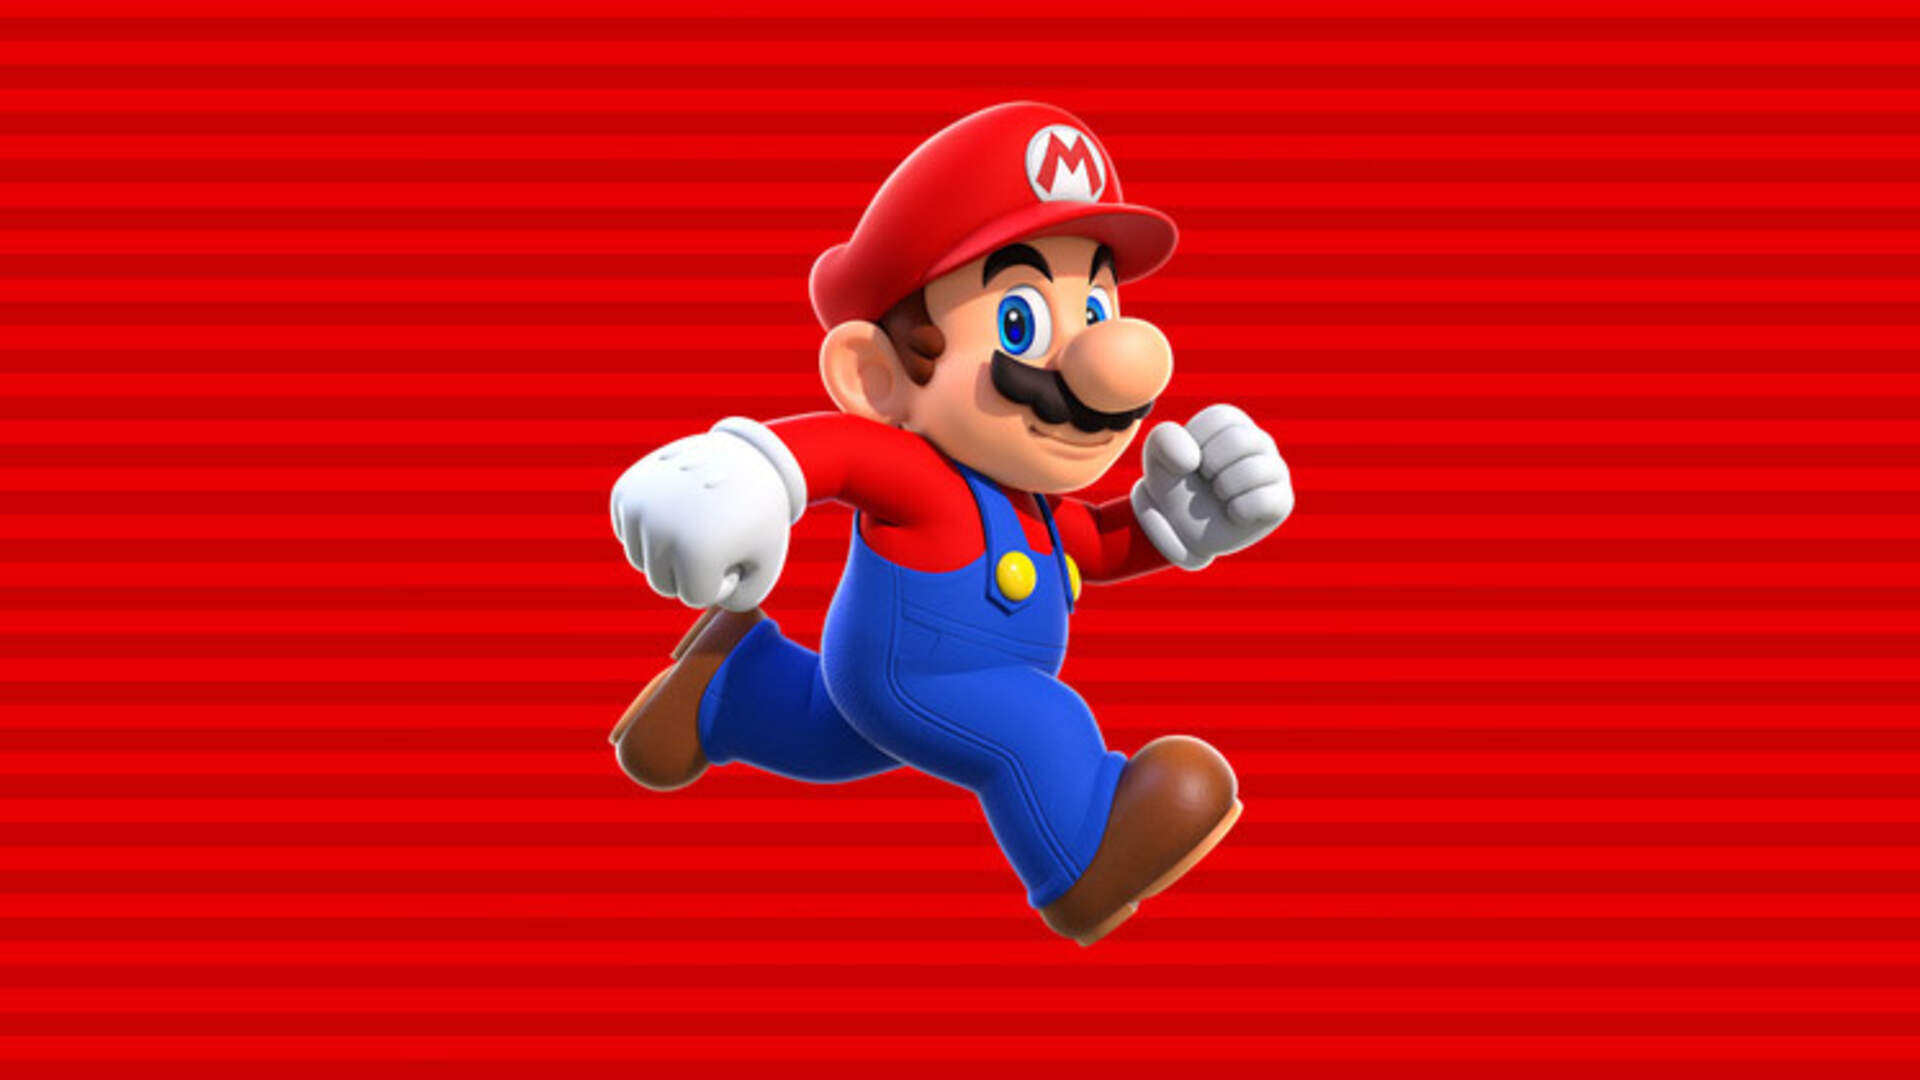 Super Mario Run Hits 50 Million Downloads, Launches Friendly Run Mode [Updated]